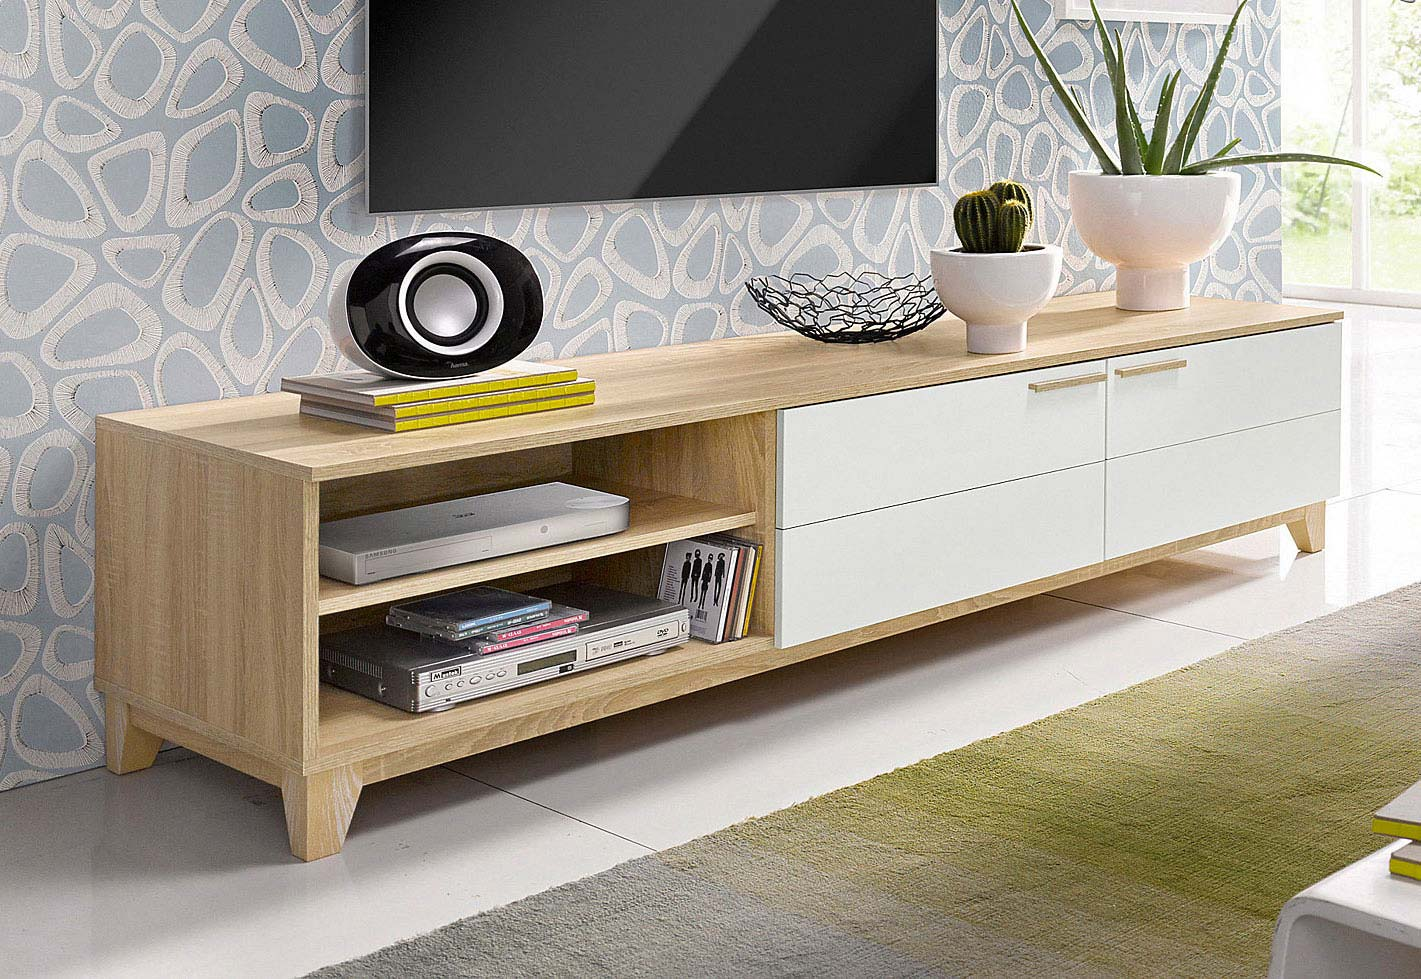 Meuble tv scandinave moderne - Made com meuble tv ...